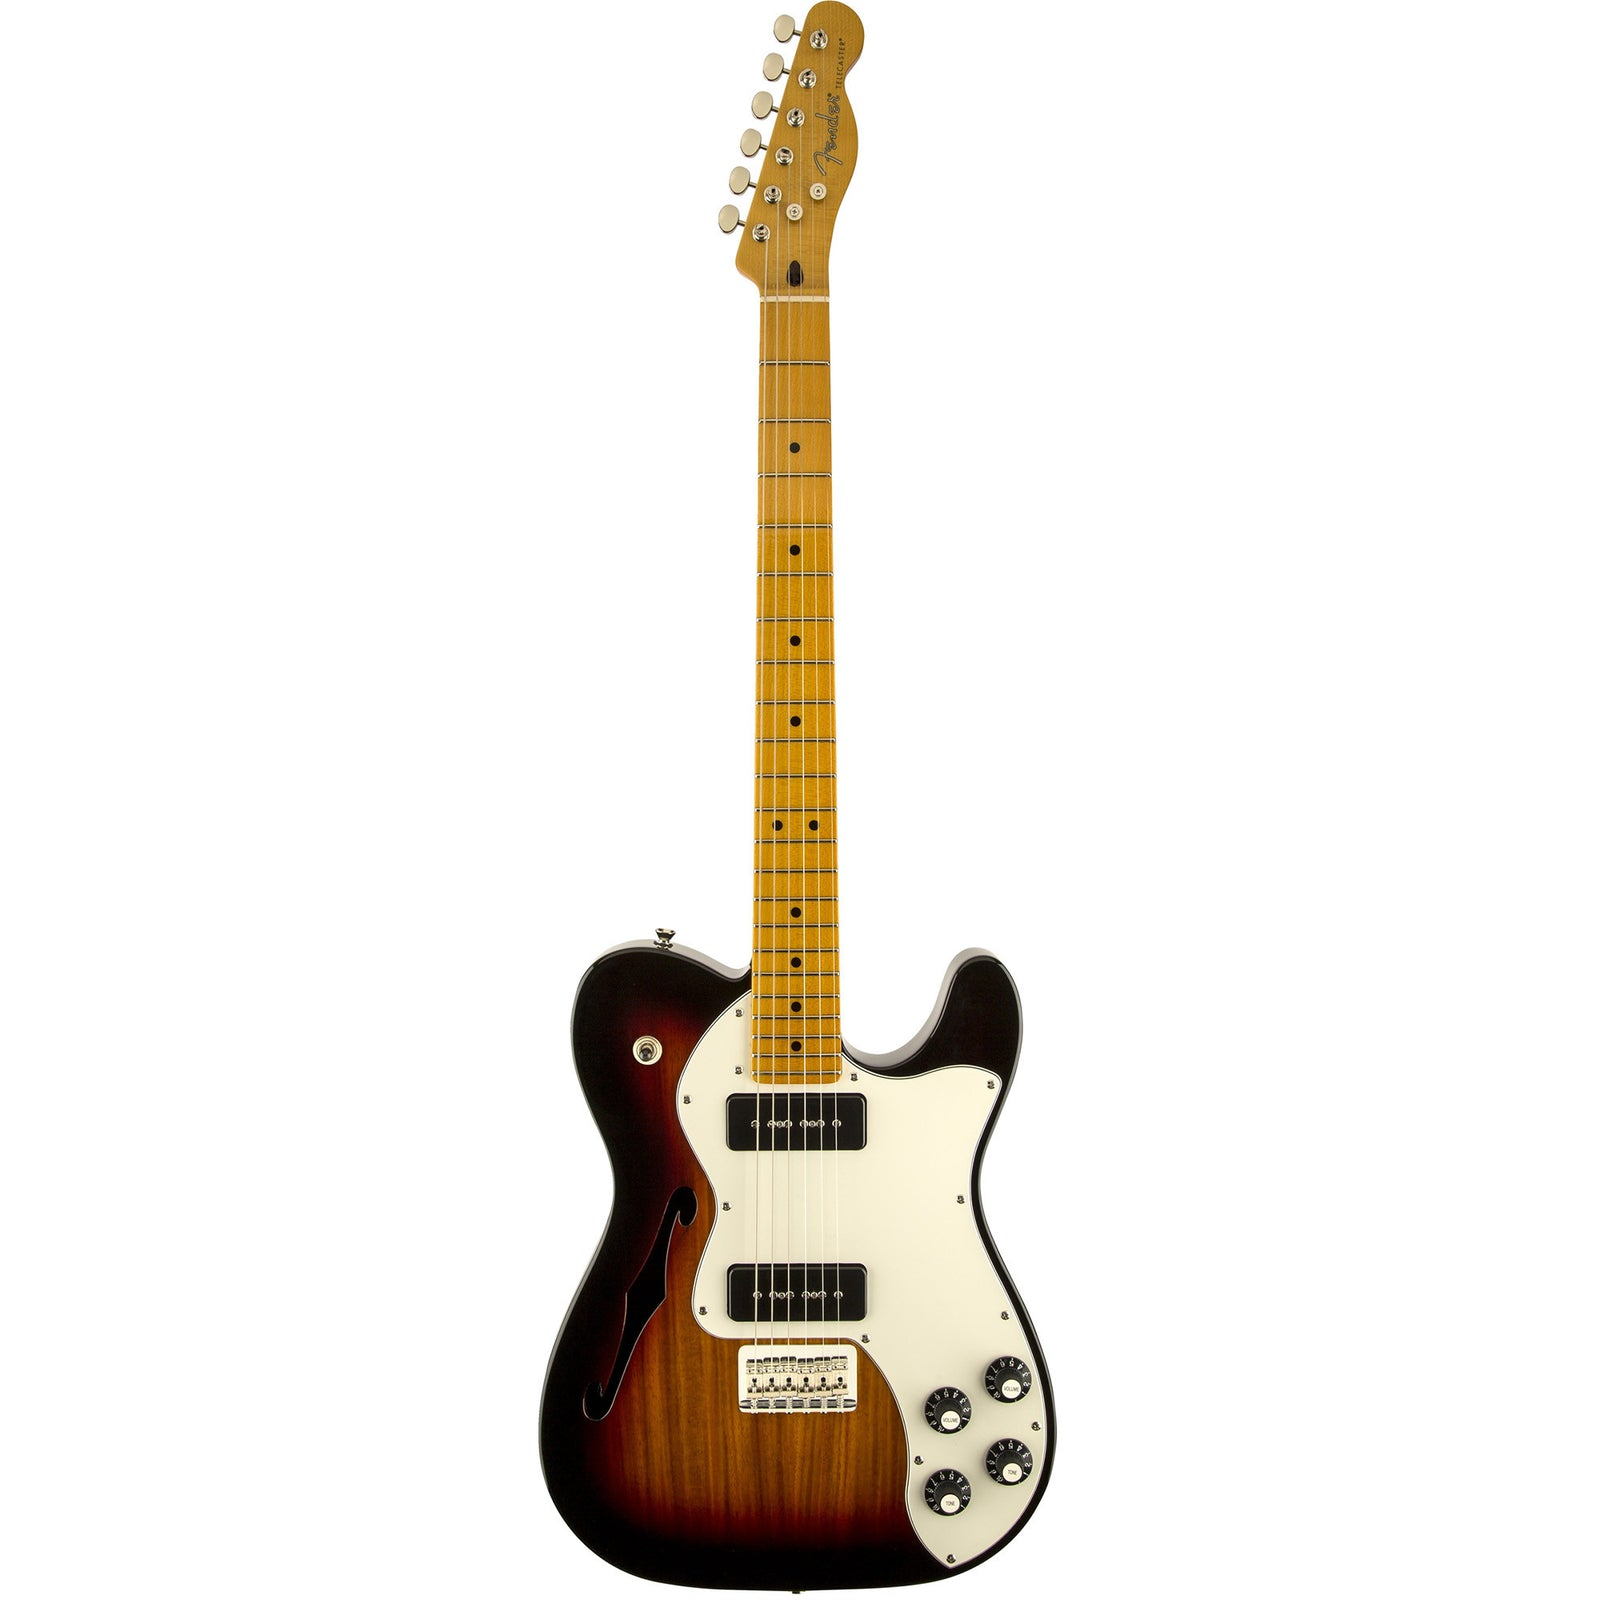 Fender Modern Player Telecaster Thinline Deluxe - Maple Fingerboard - 3-Color Sunburst